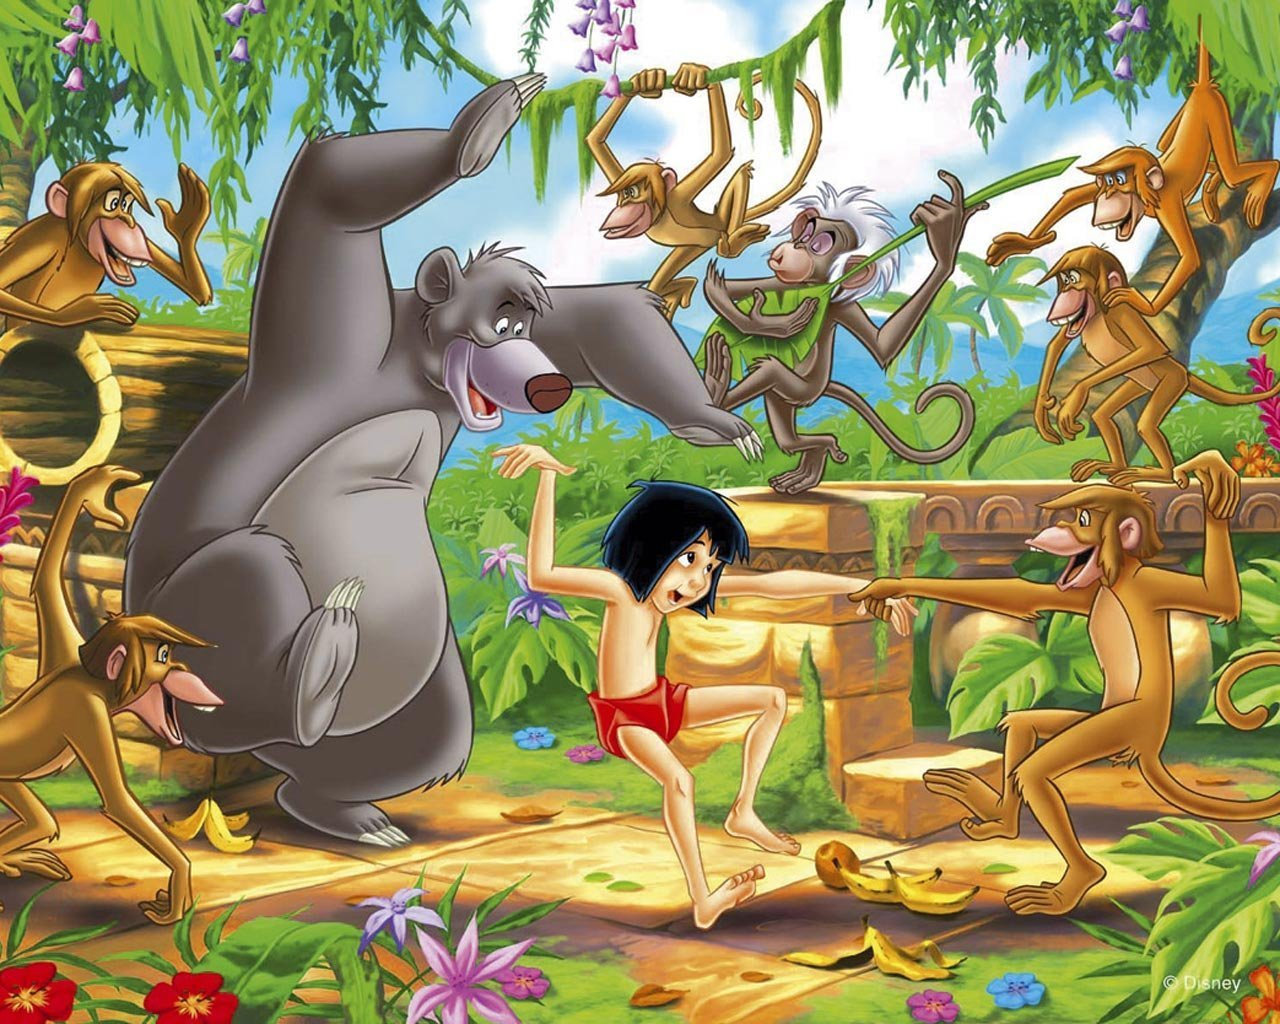 Jungle book hd disneys